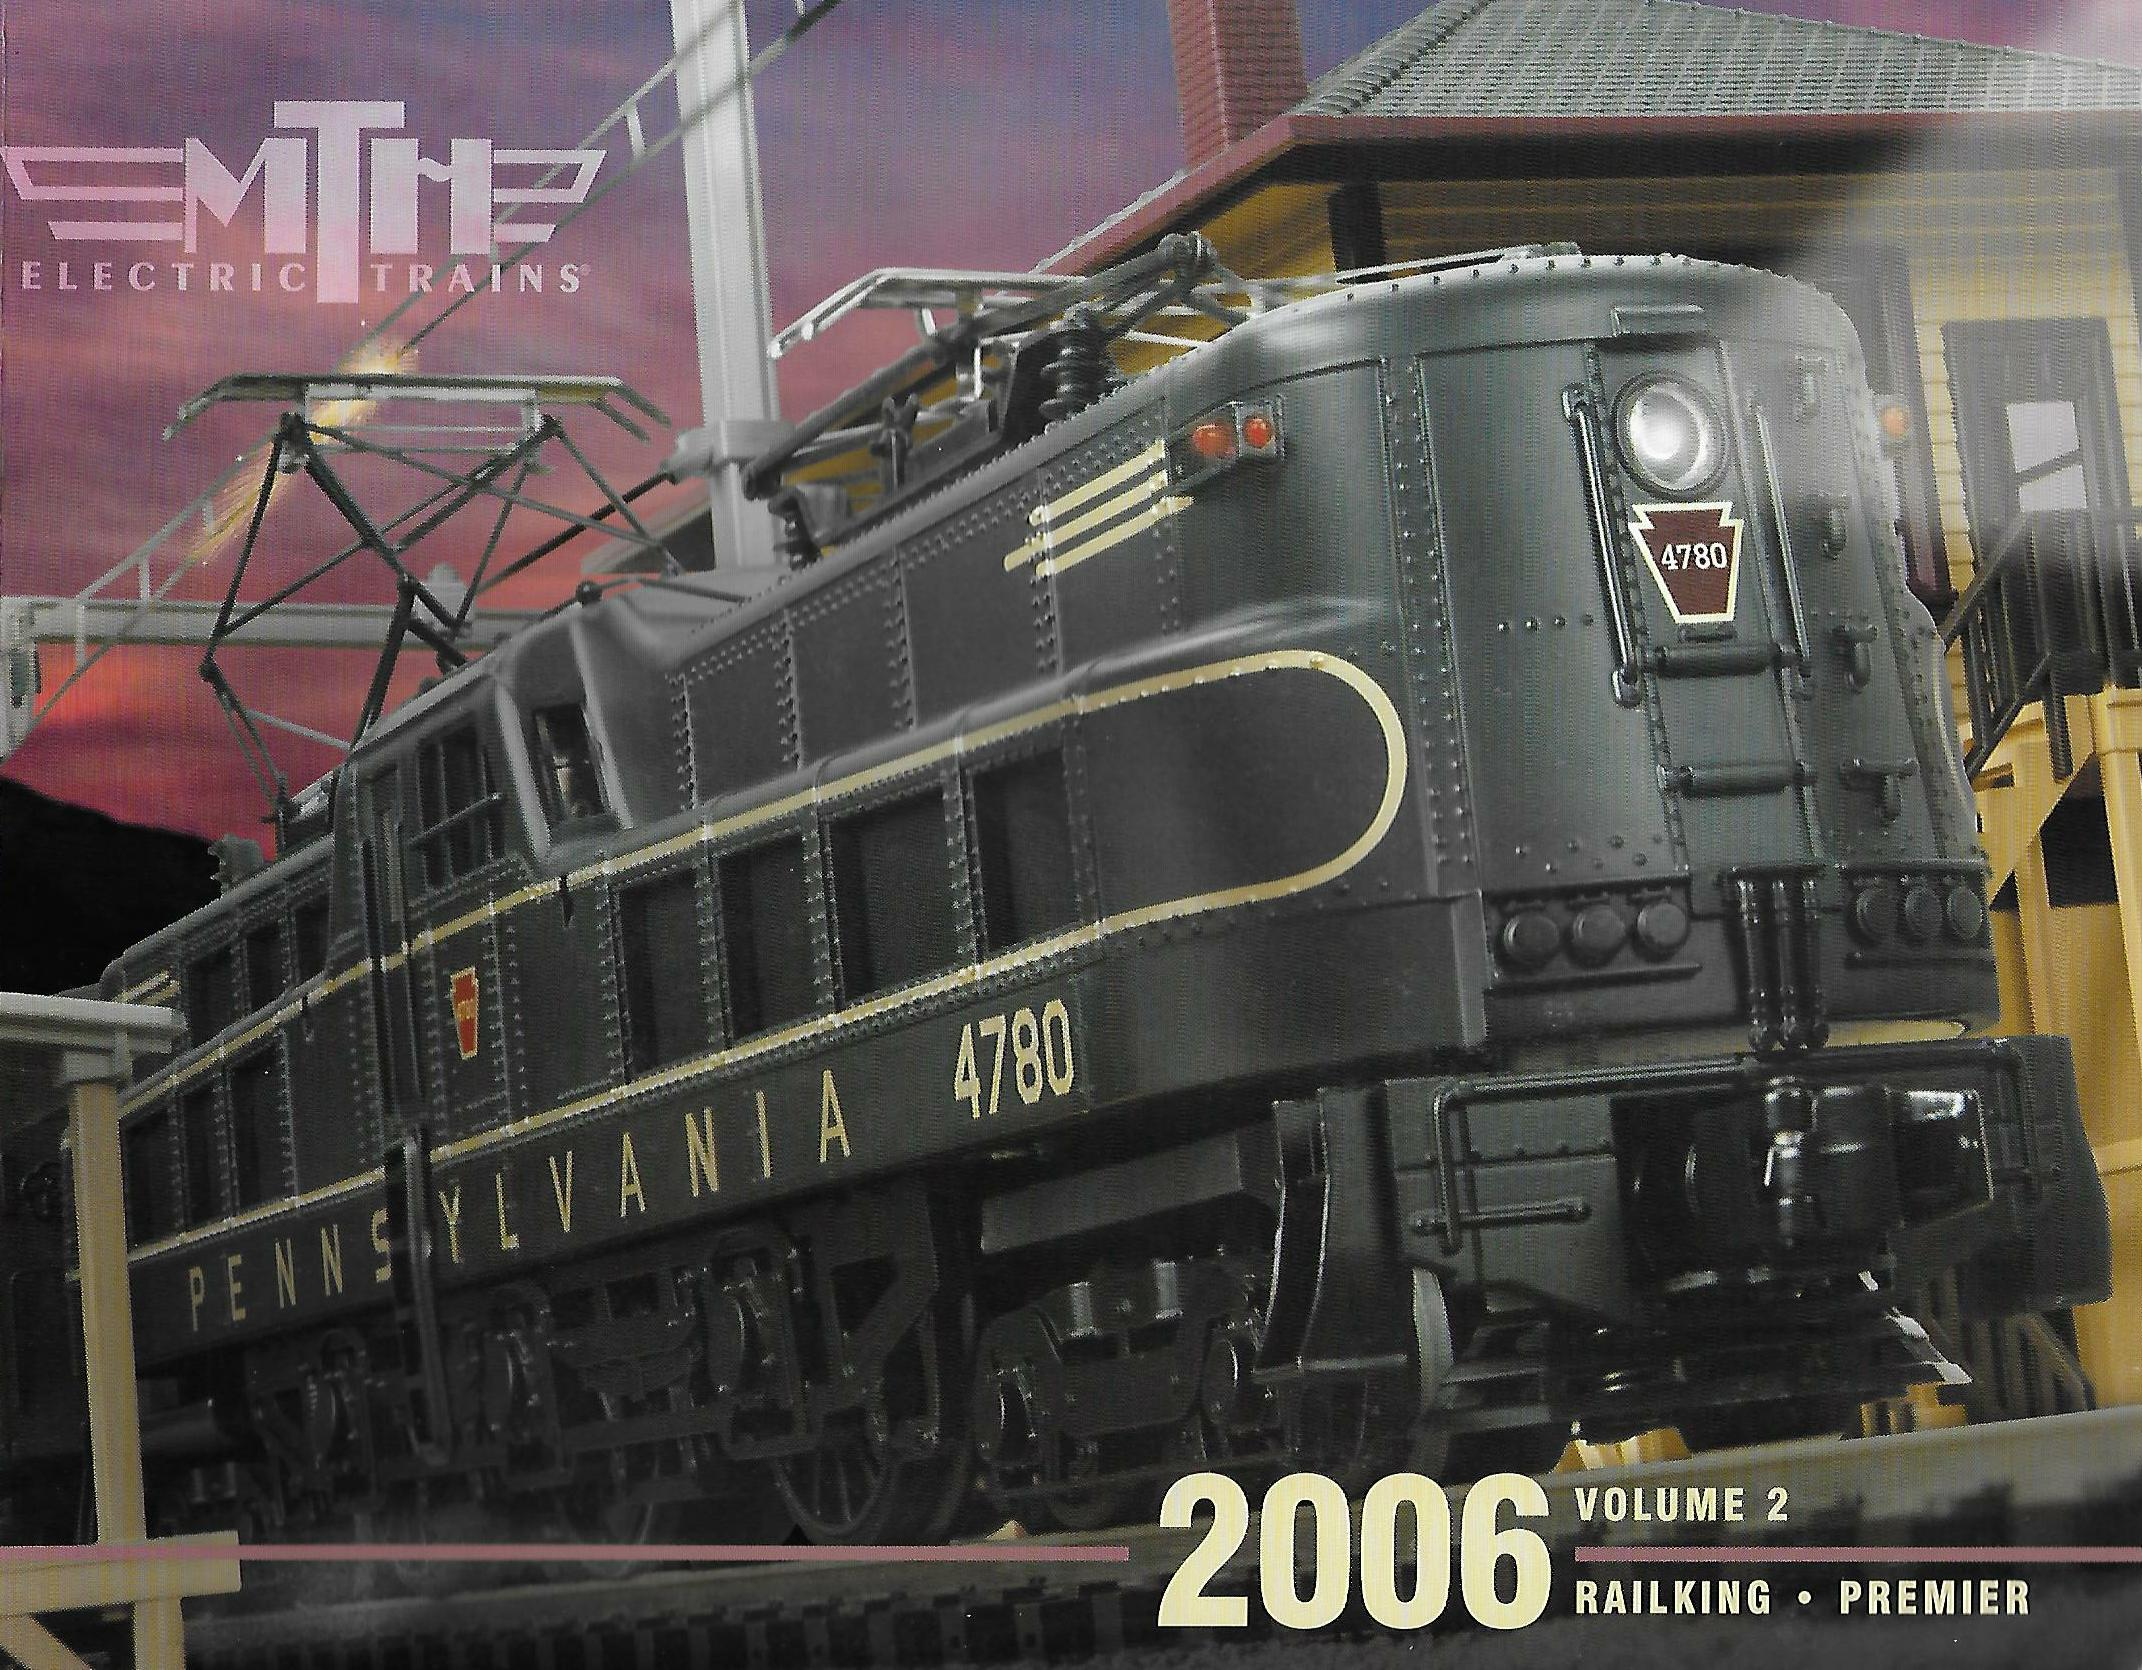 MTH 2006 Volume 2 Catalog image